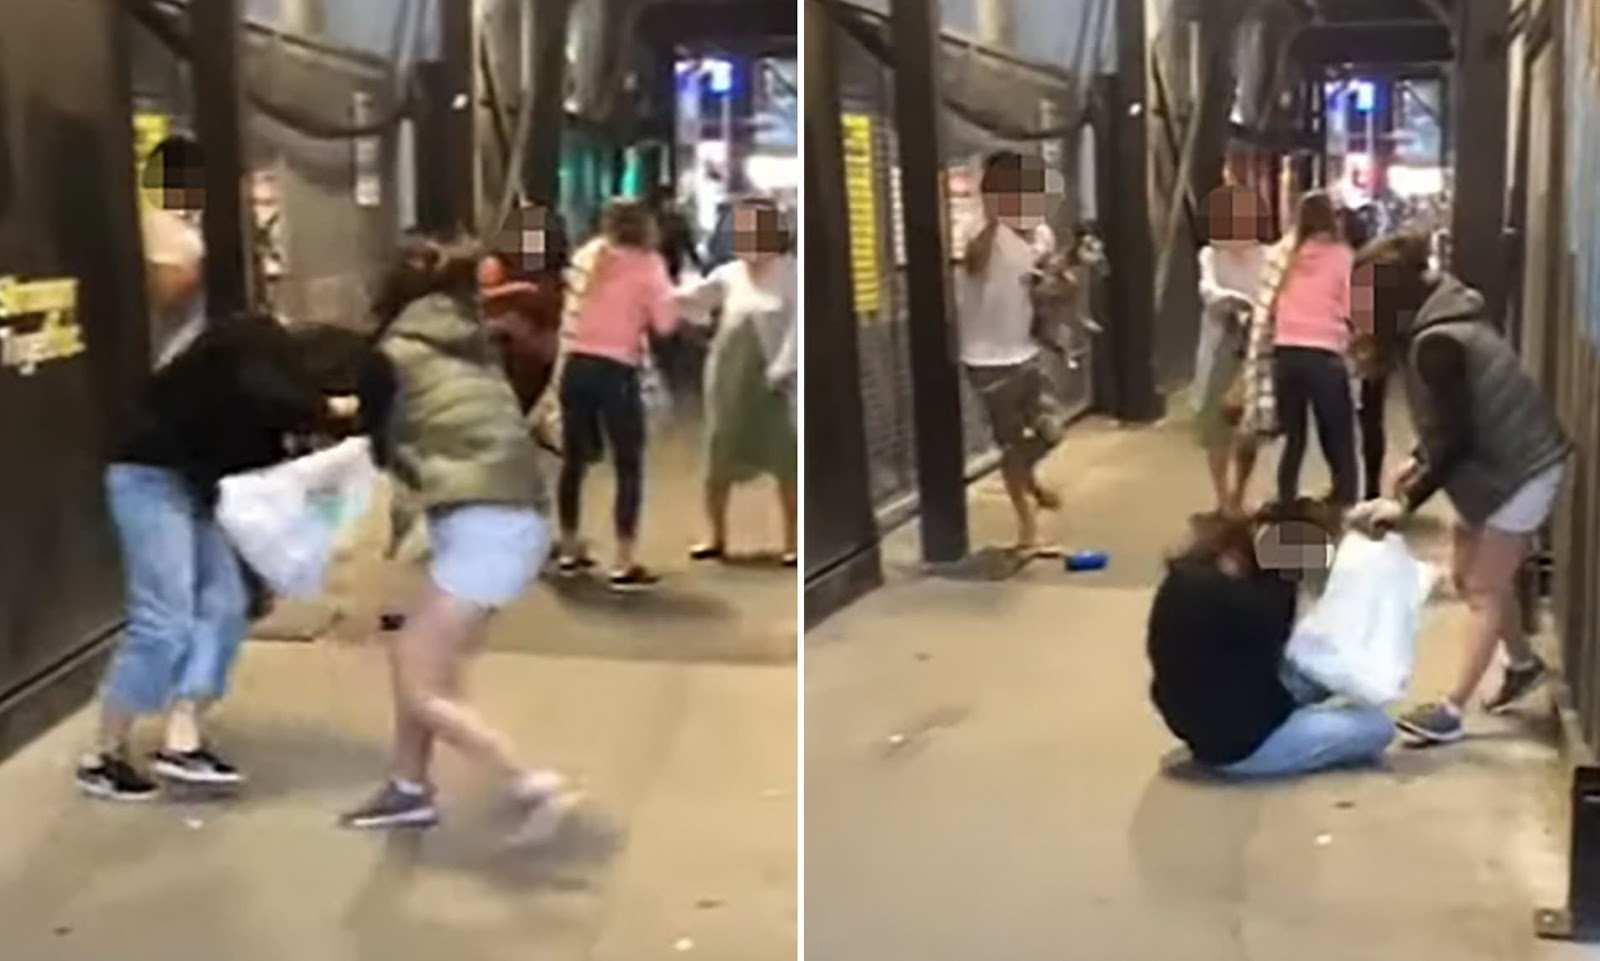 Singaporean student and friend hurt in racist attack in Melbourne, posted on Monday, 20 April 2020